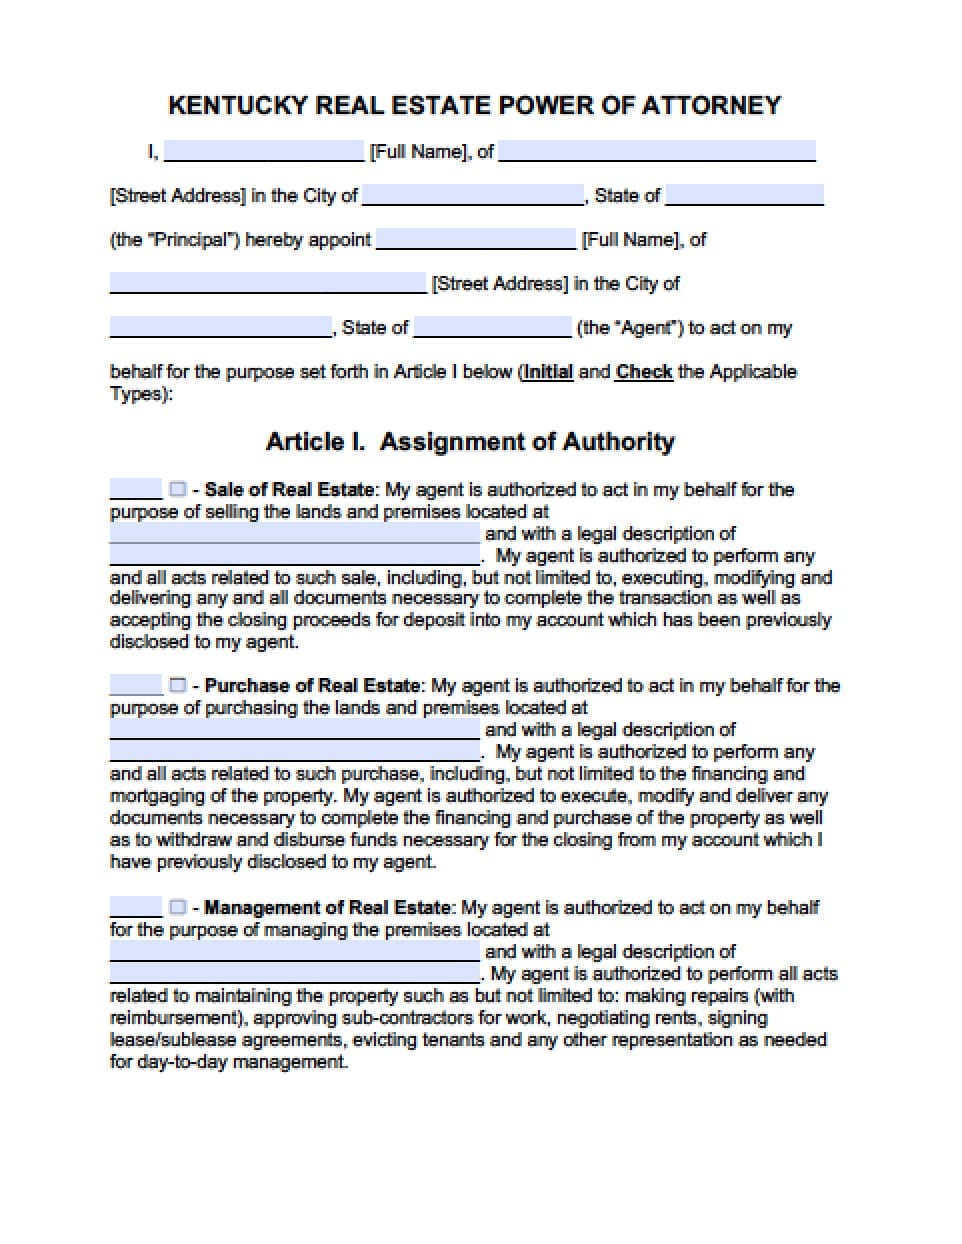 power of attorney form kentucky Kentucky Real Estate ONLY Power of Attorney Form - Power of Attorney ...